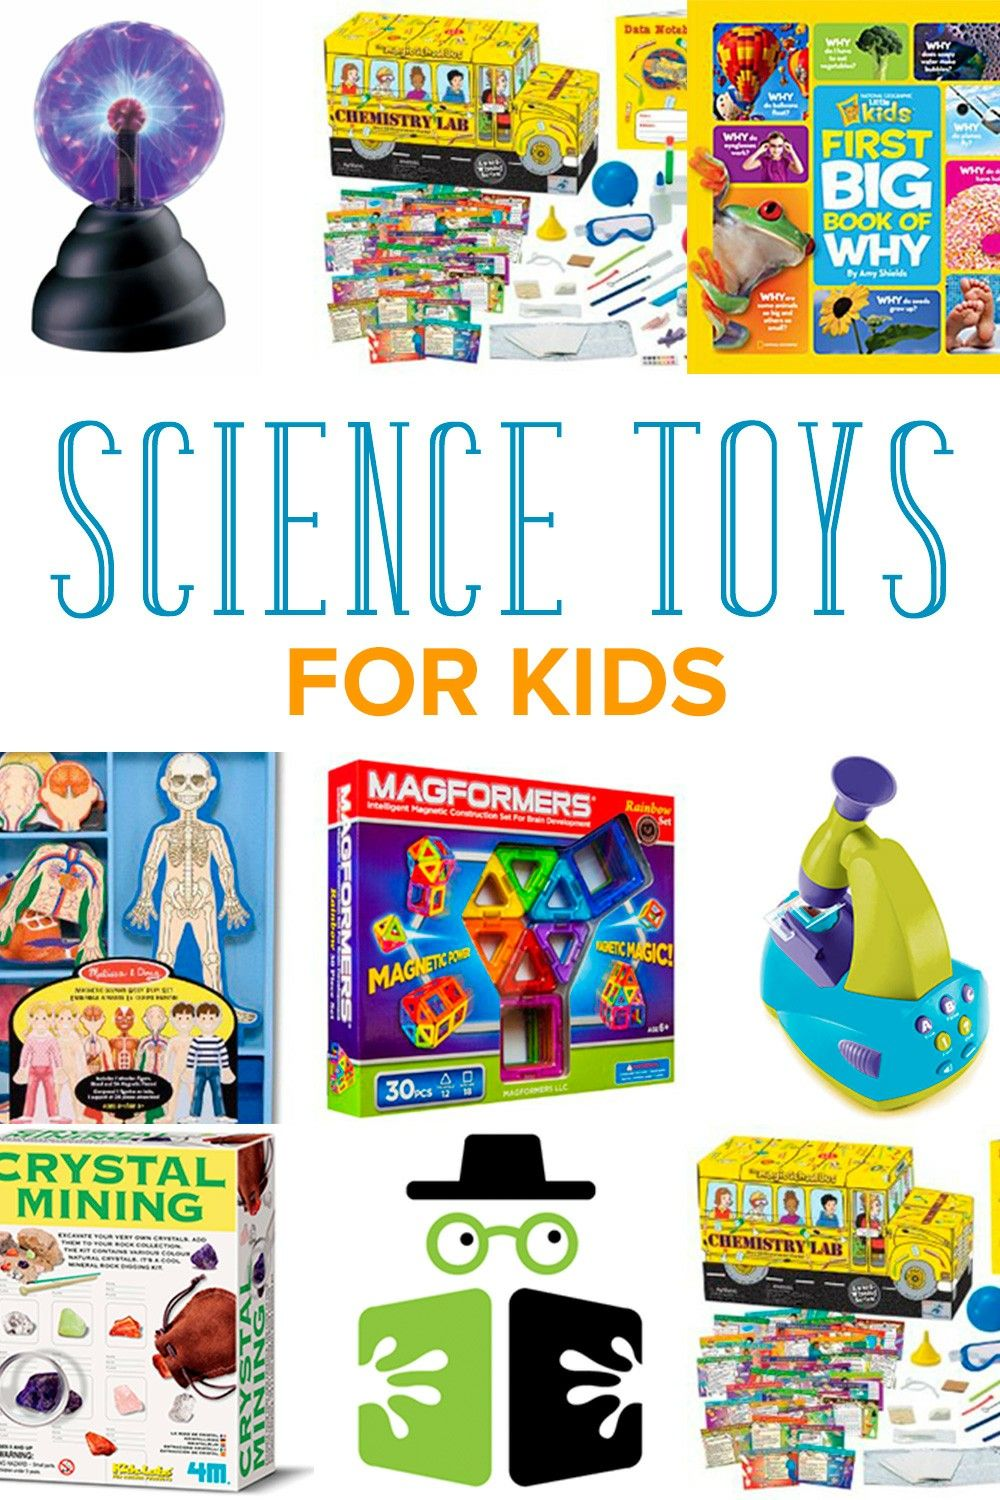 Toys for kids 8 and up  Pin by Ashlee Snell on zo xmas ideas  Pinterest  Xmas ideas